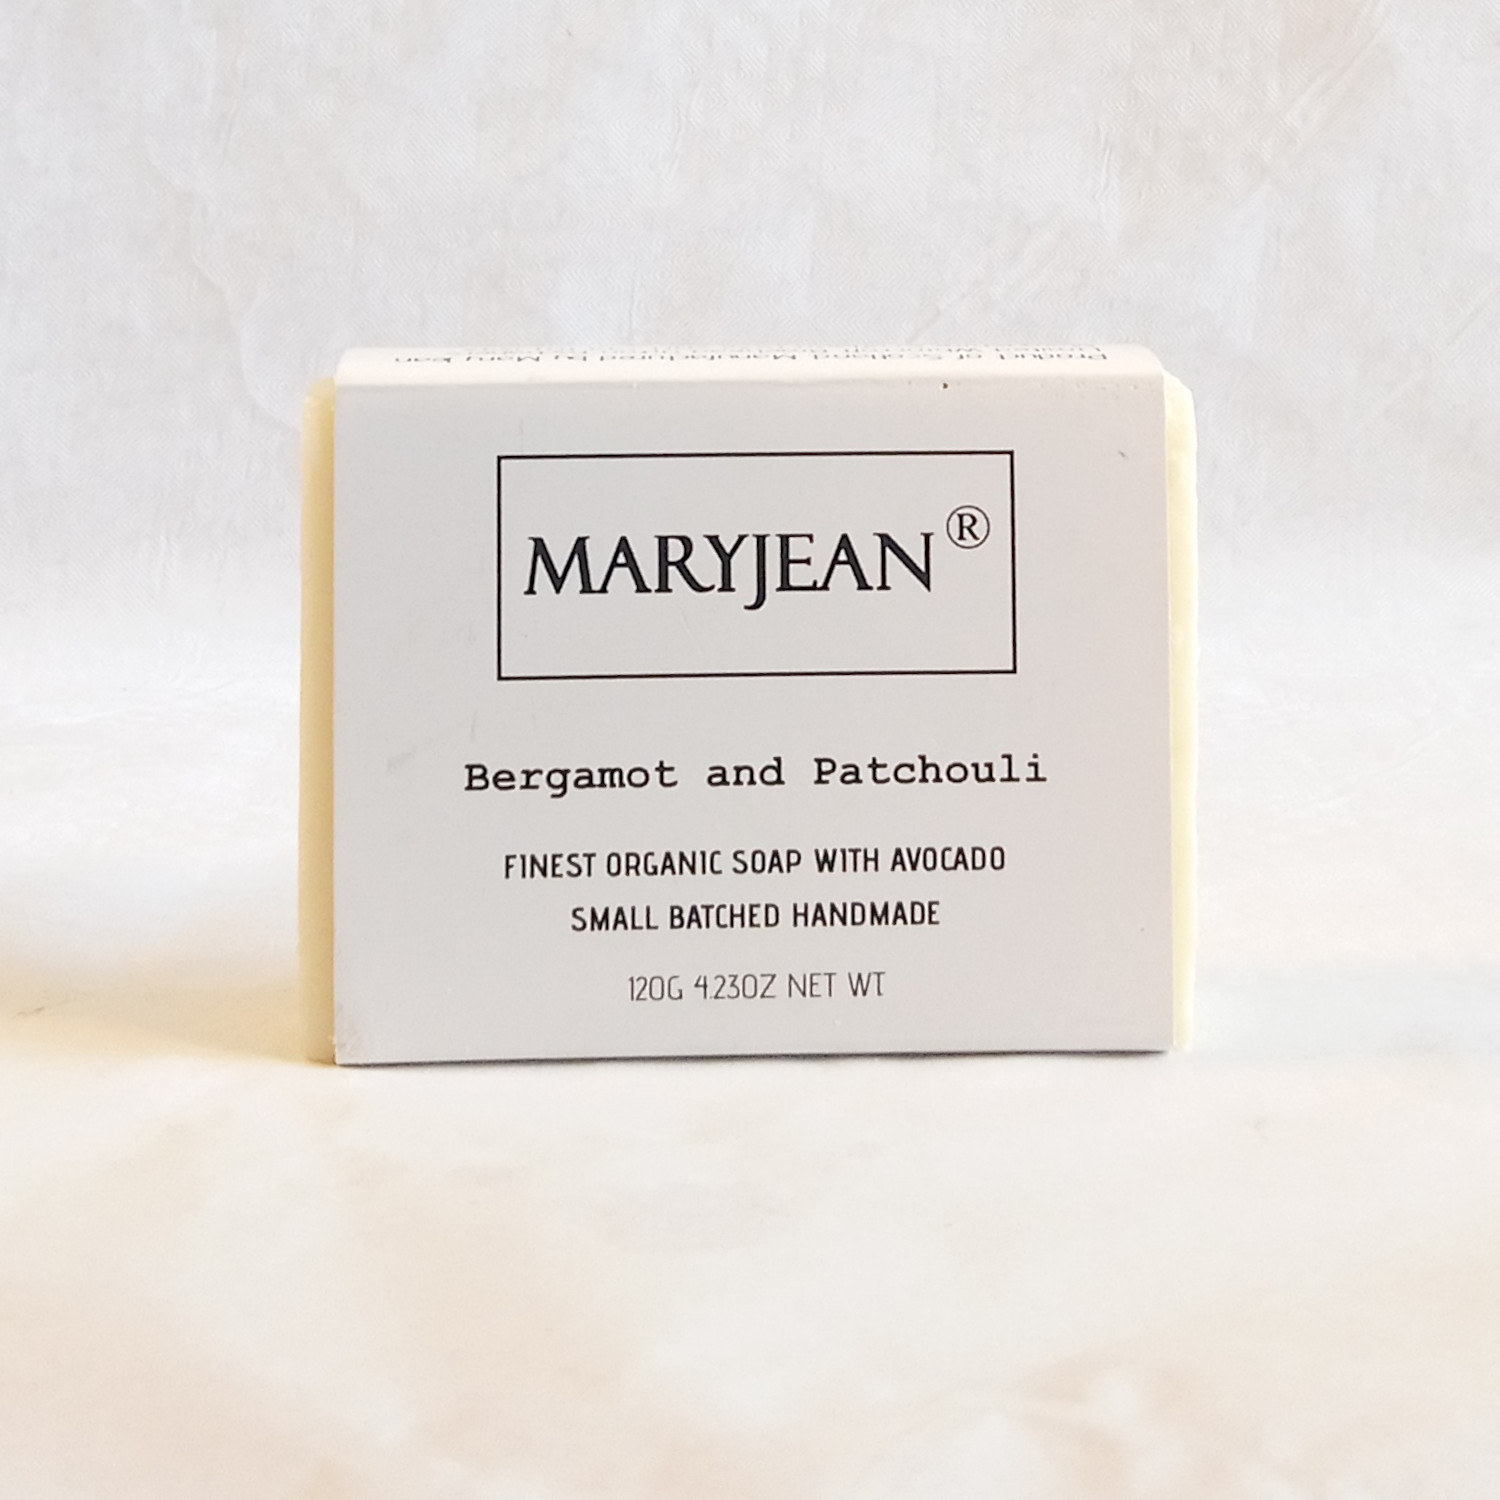 Blending of Avocado and Cocoa oils excellent for reducing wrinkles and stretch marks use regularly for excellent skin firming visible improvements Organic Scottish Bergamot Patchouli Soap Handmade With Avocado